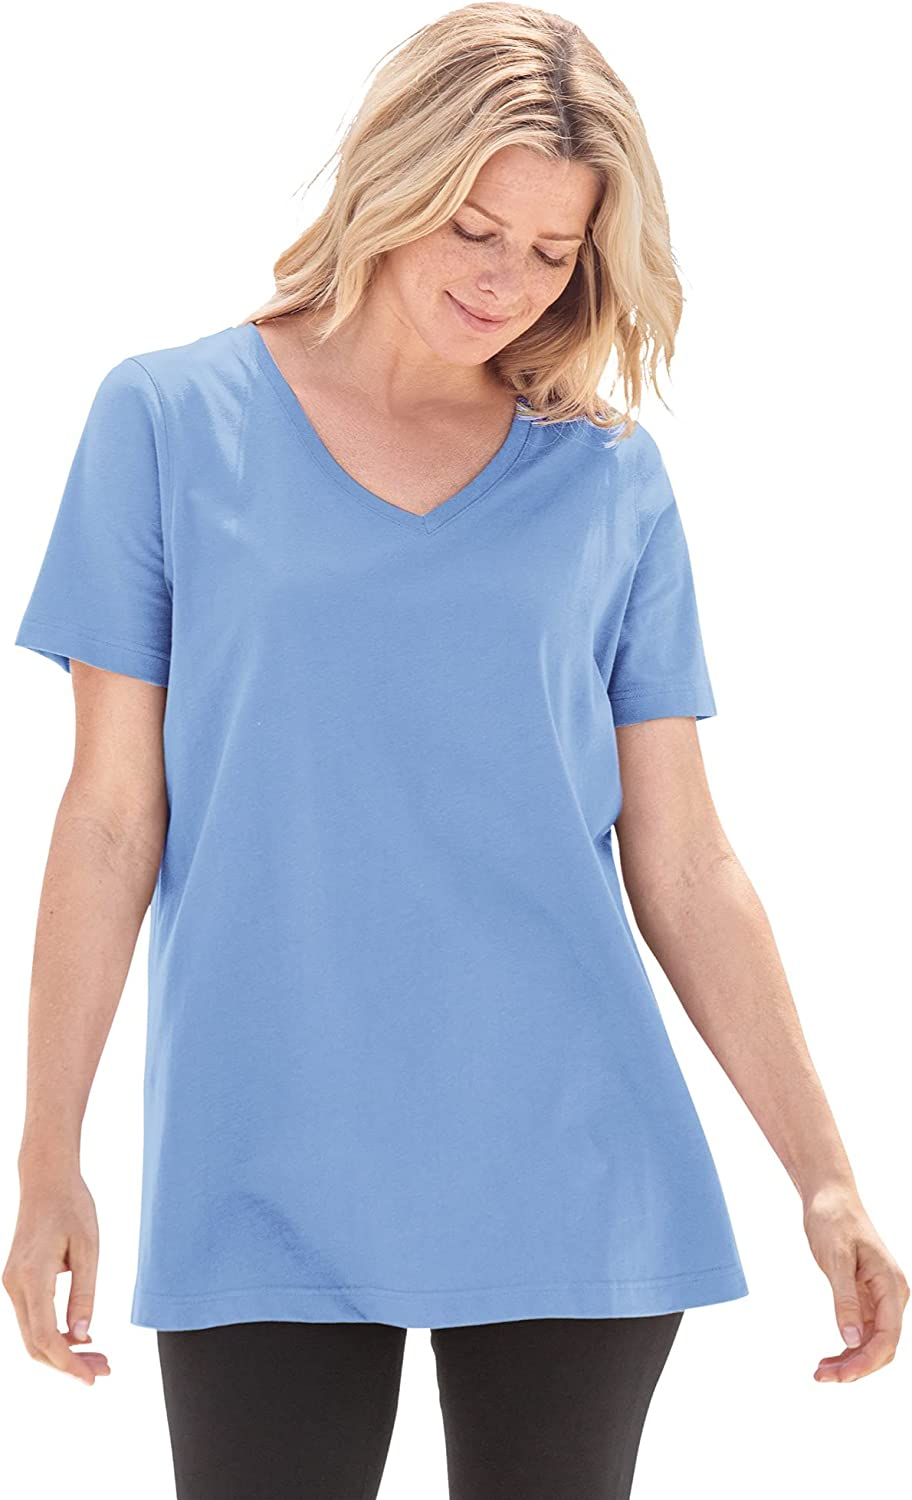 Woman Within Women's Plus Size Petite Perfect Short-Sleeve V-Neck Tee Shirt